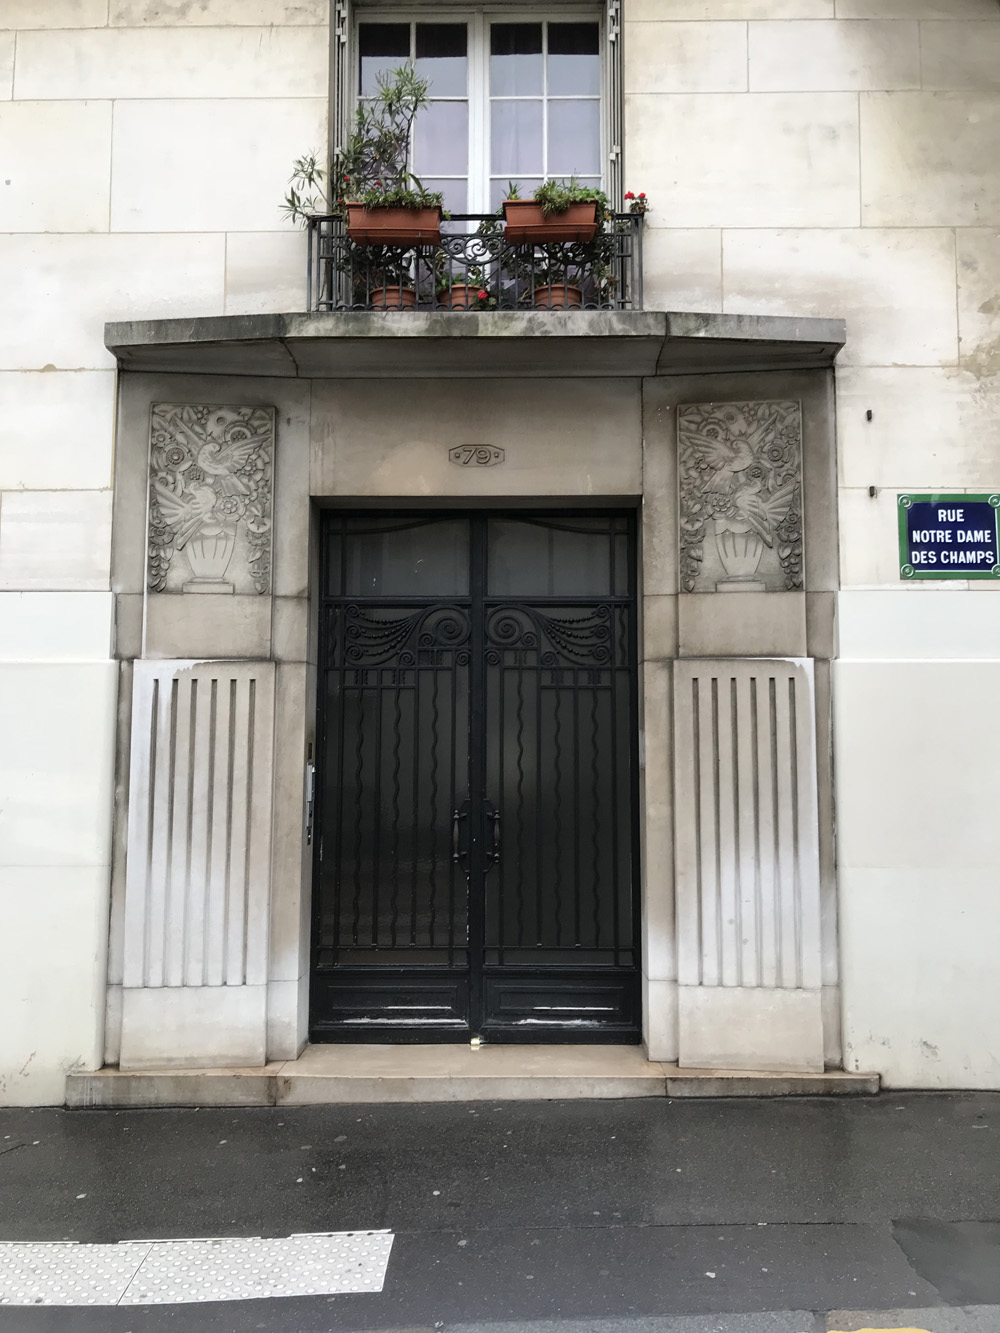 door-notre-damme-du-champs-paris-france-alicia-drake